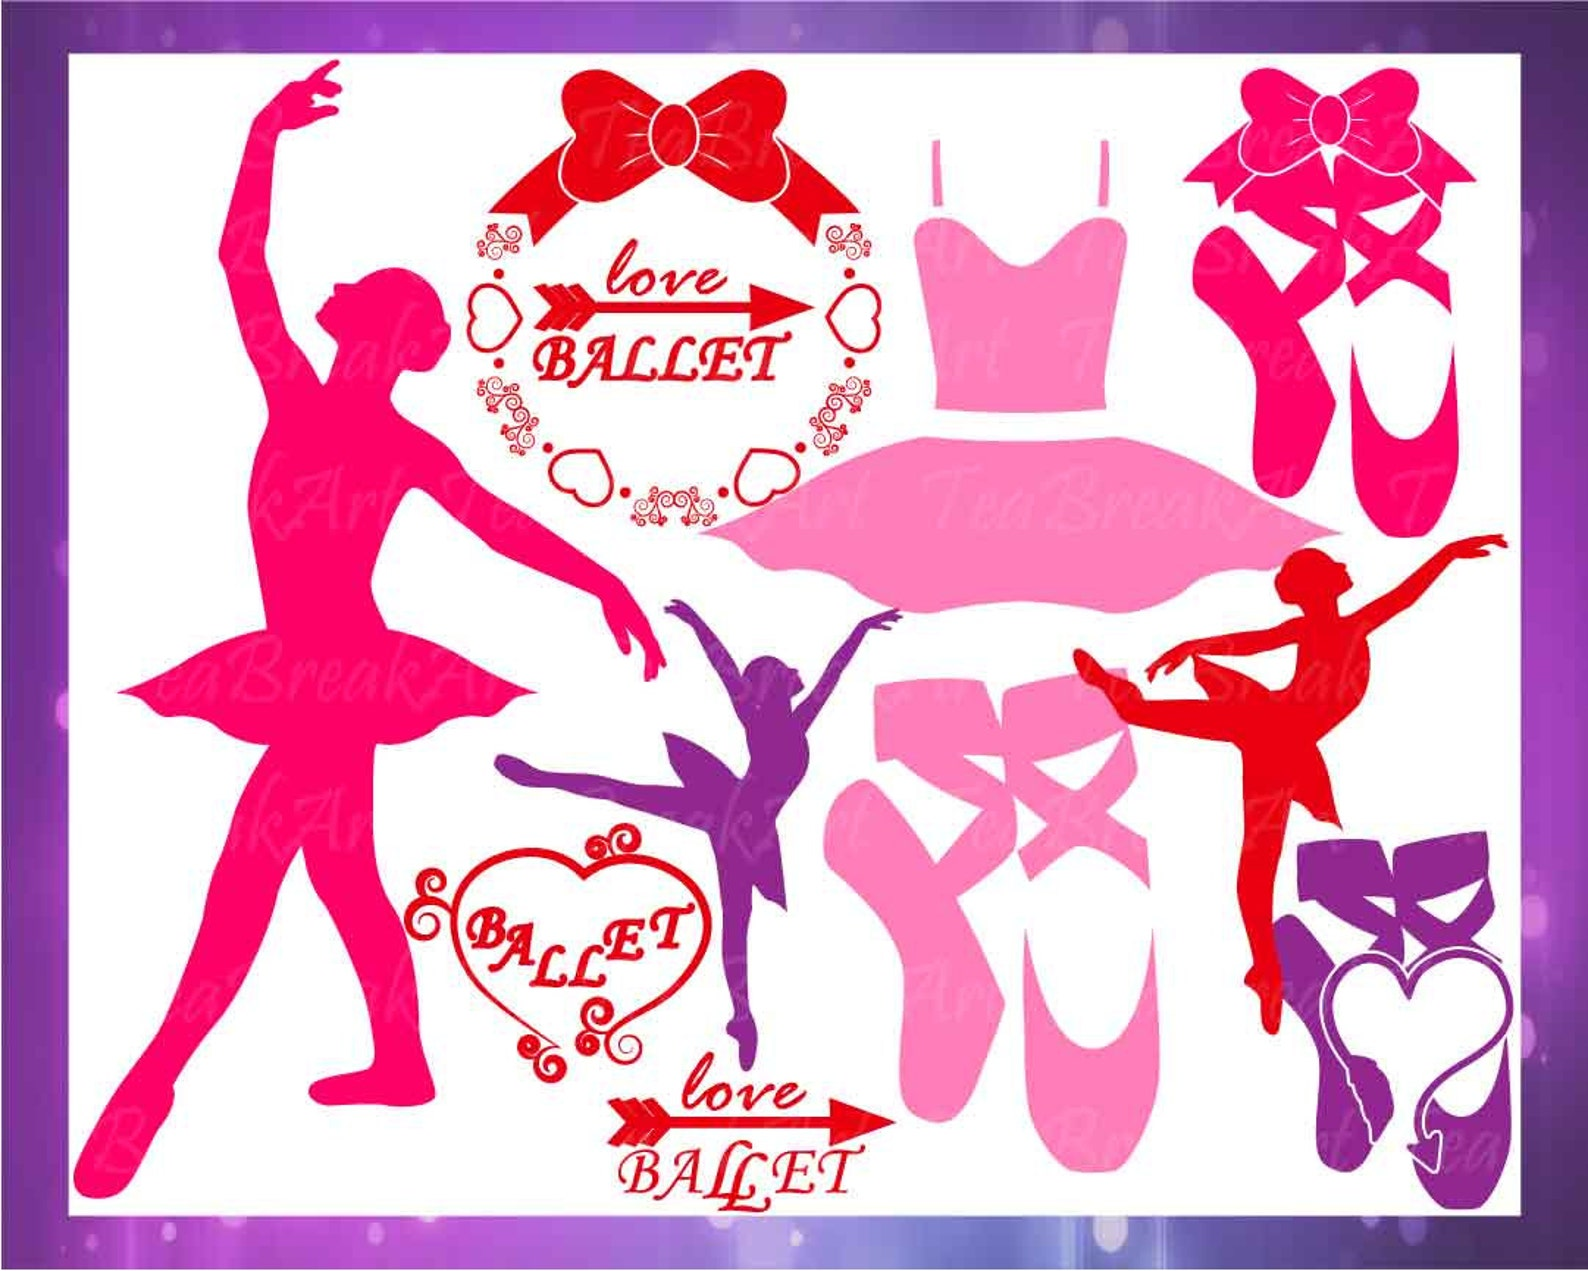 ballet monogram set clipart cutting files svg jpg eps vinyl papercut paper cut heat transfer digital graphics template cuttable